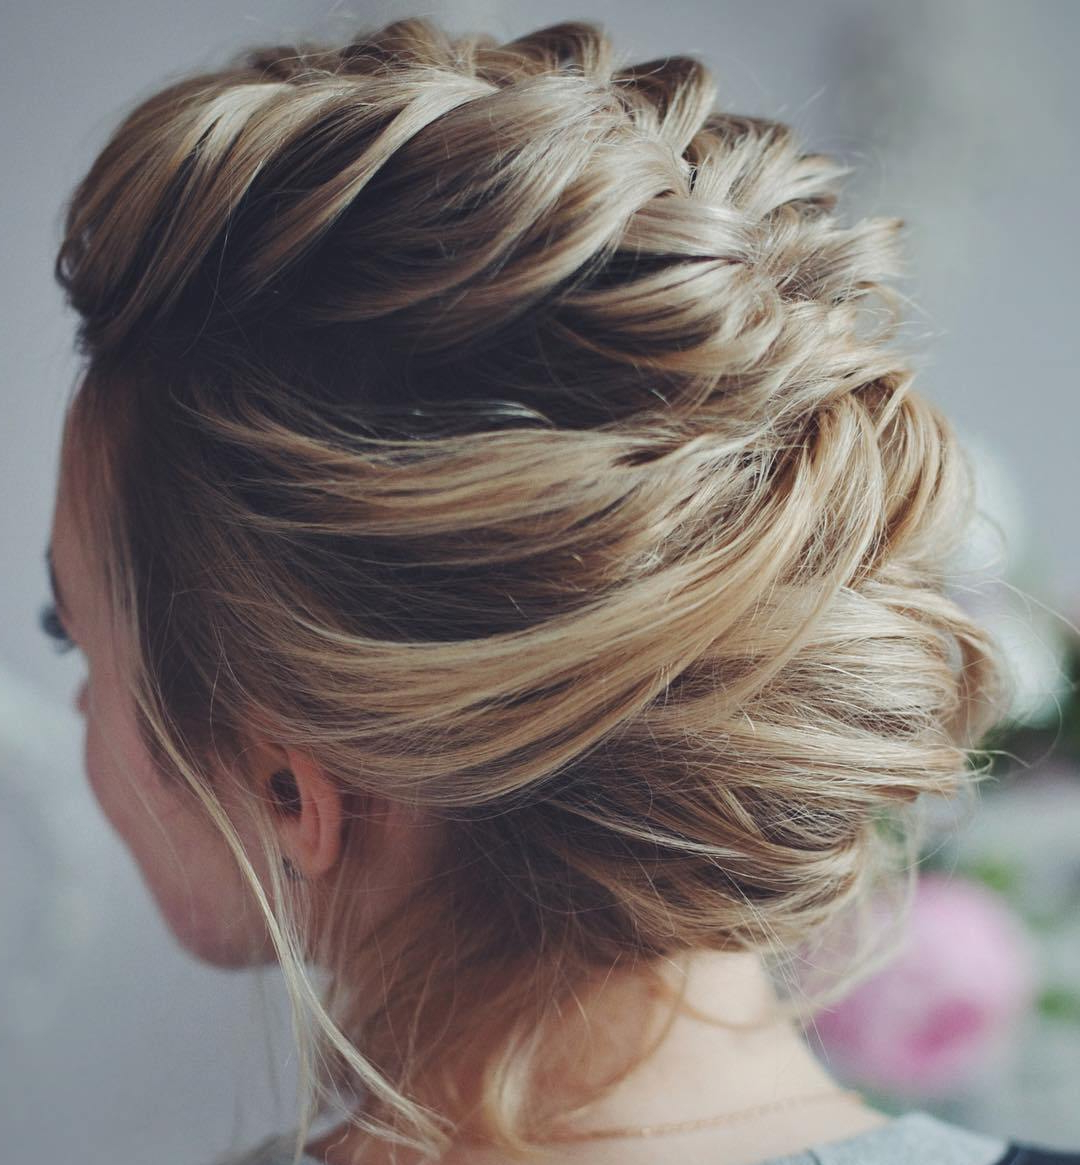 50 Hottest Prom Hairstyles For Short Hair Pertaining To Newest Messy Rope Braid Updo Hairstyles (Gallery 16 of 20)